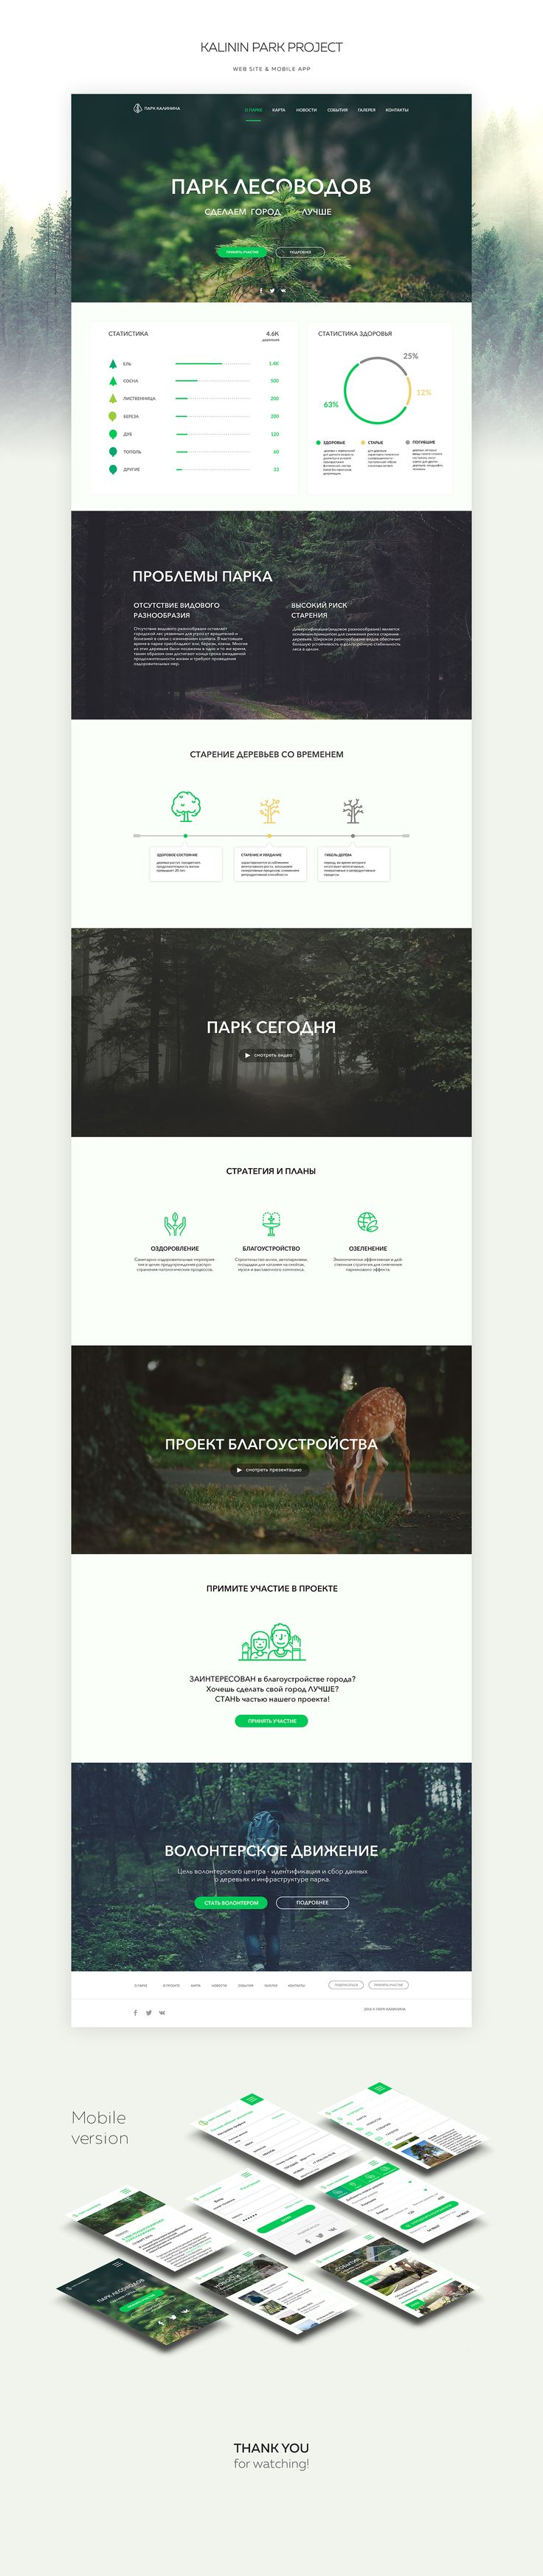 Kalinin Park on Behance. If you like UX, design, or design thinking, check out theuxblog.com